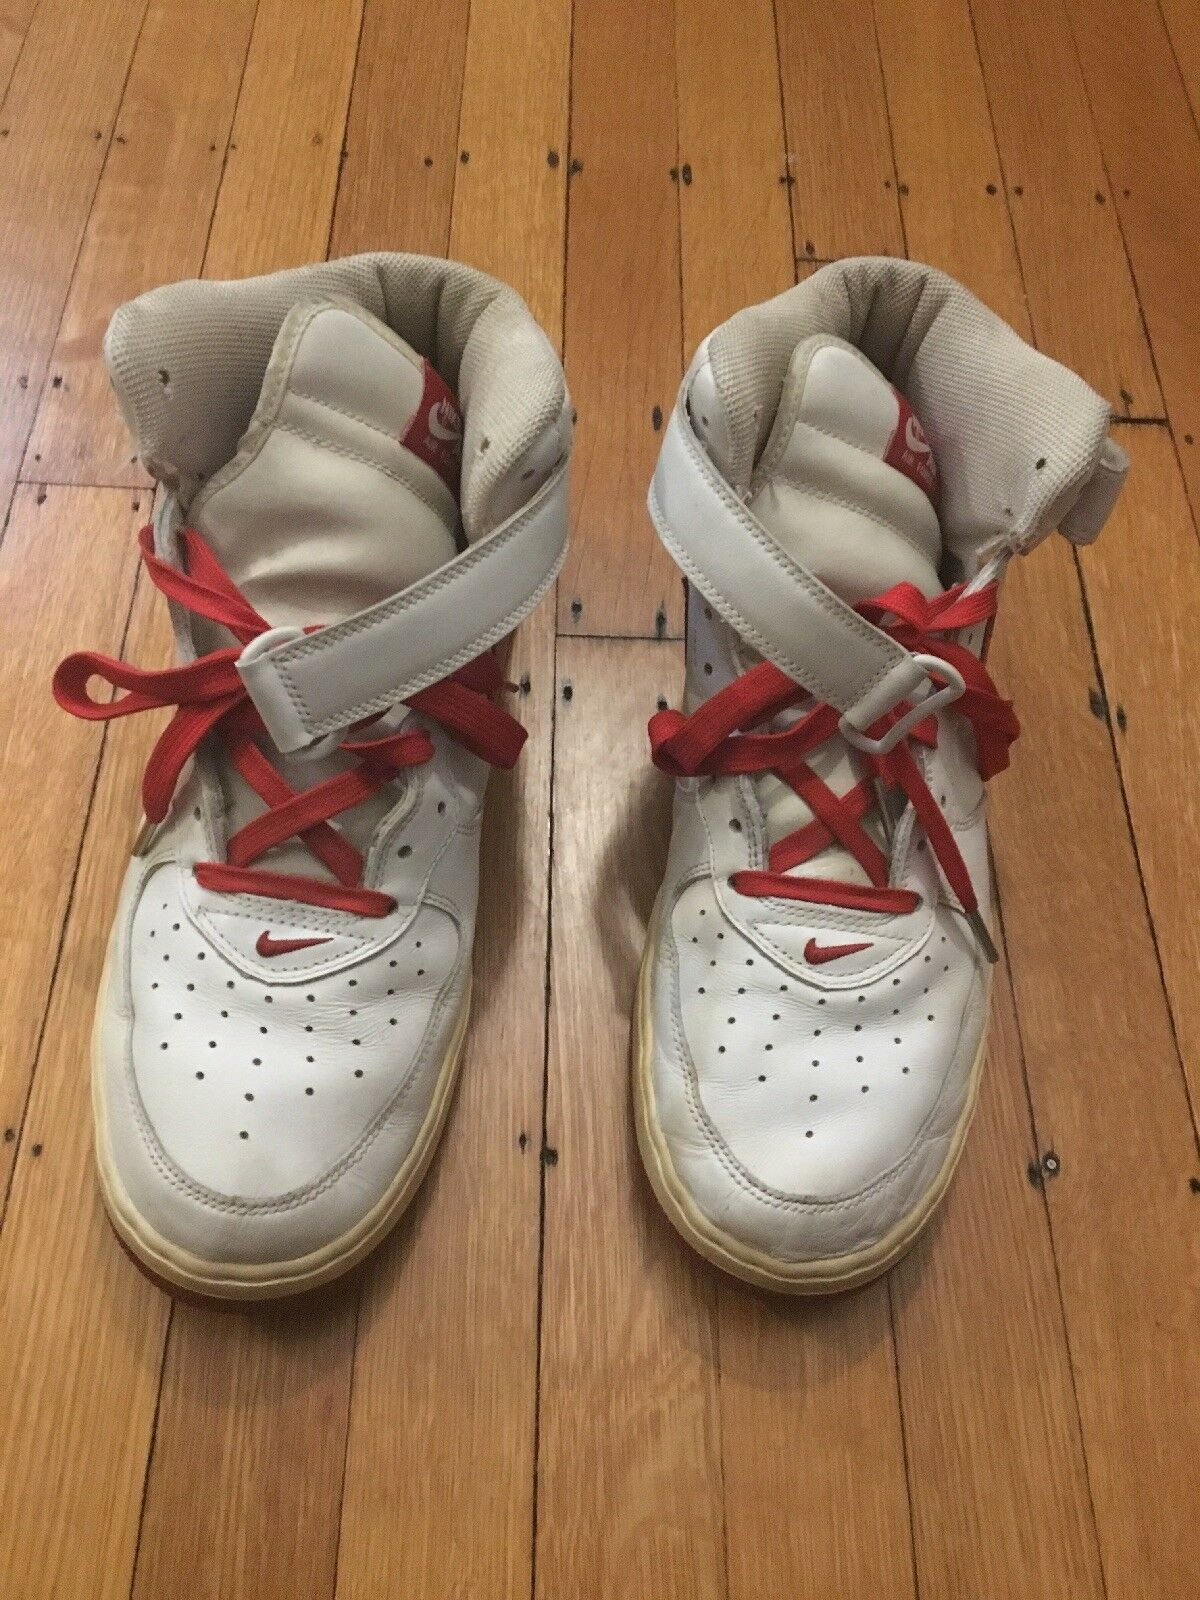 Men's Nike Air Force 1 White Red 306352-163-00 US Size 12 Rare